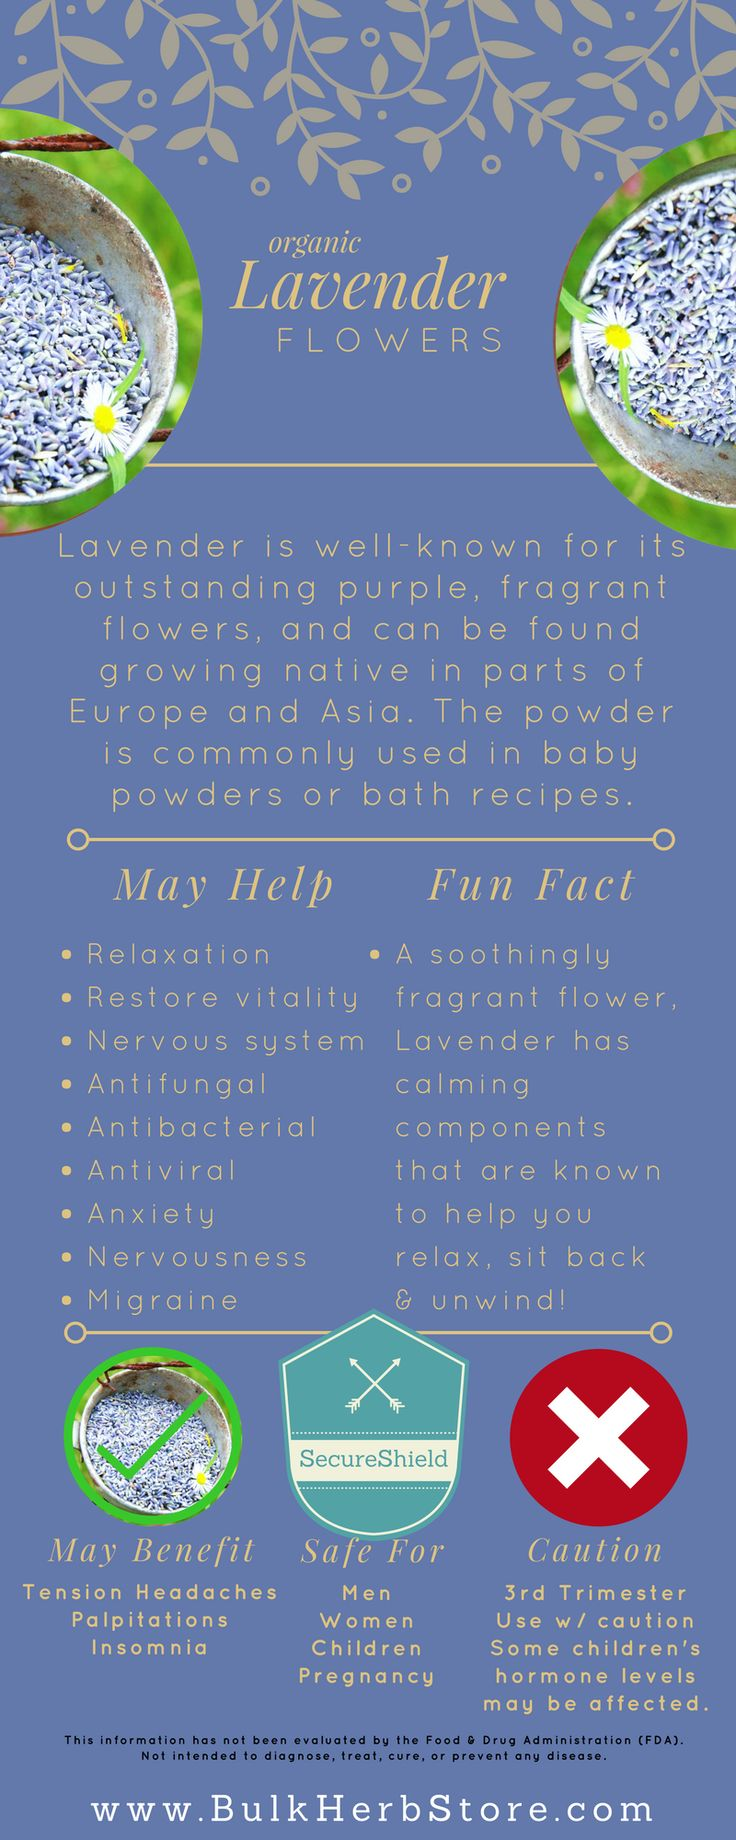 Lavender has a wonderfully relaxing effect on the mind and body and makes a good remedy for anxiety, nervousness, and physical symptoms caused by stress such as tension headaches, migraine, palpitations, and insomnia. It also has a stimulating edge to it, acting as a tonic to the nervous system and restoring vitality to people suffering from nervous exhaustion! (purchase at bulkherbstore.com )